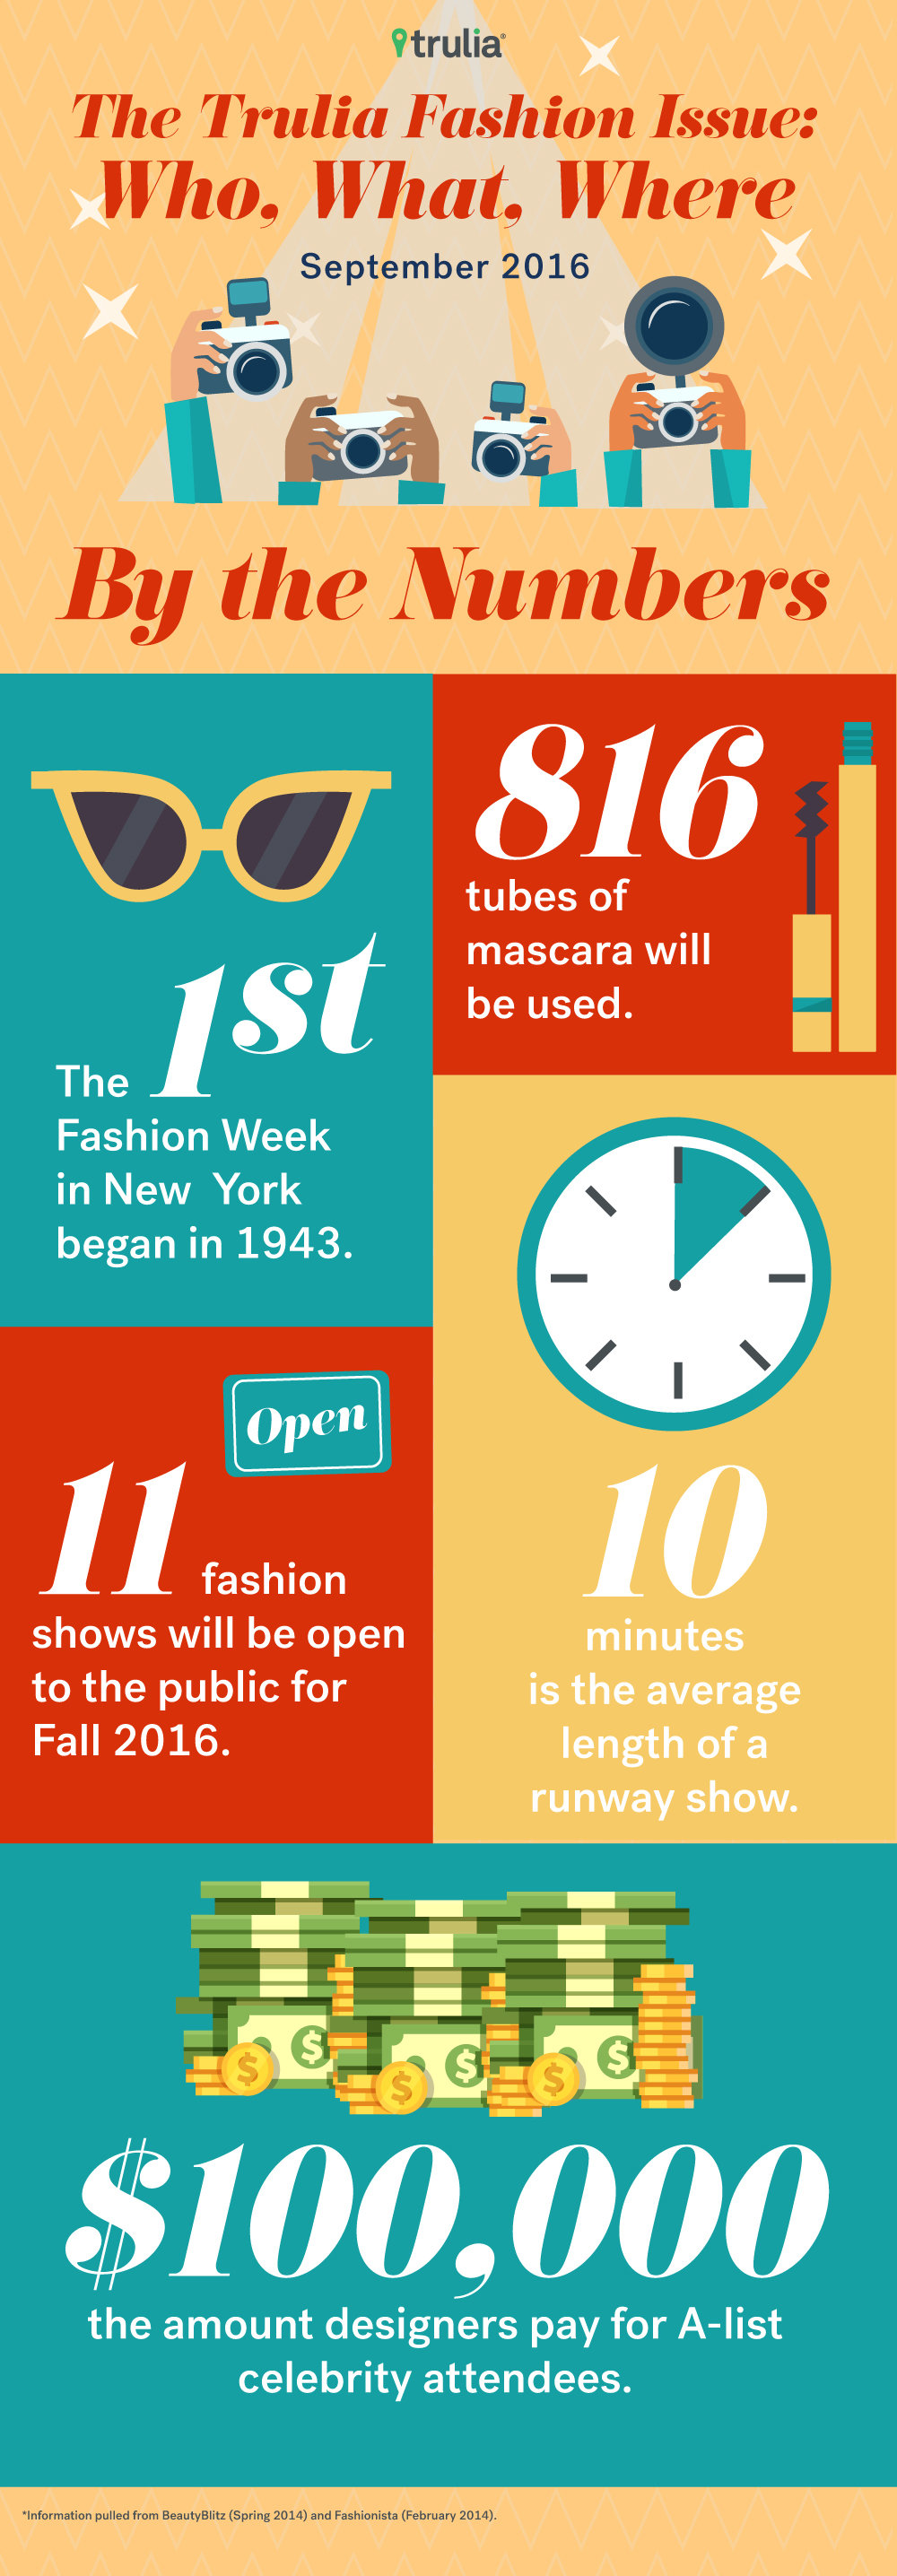 Most Fashionable Cities in the US - Embed 2